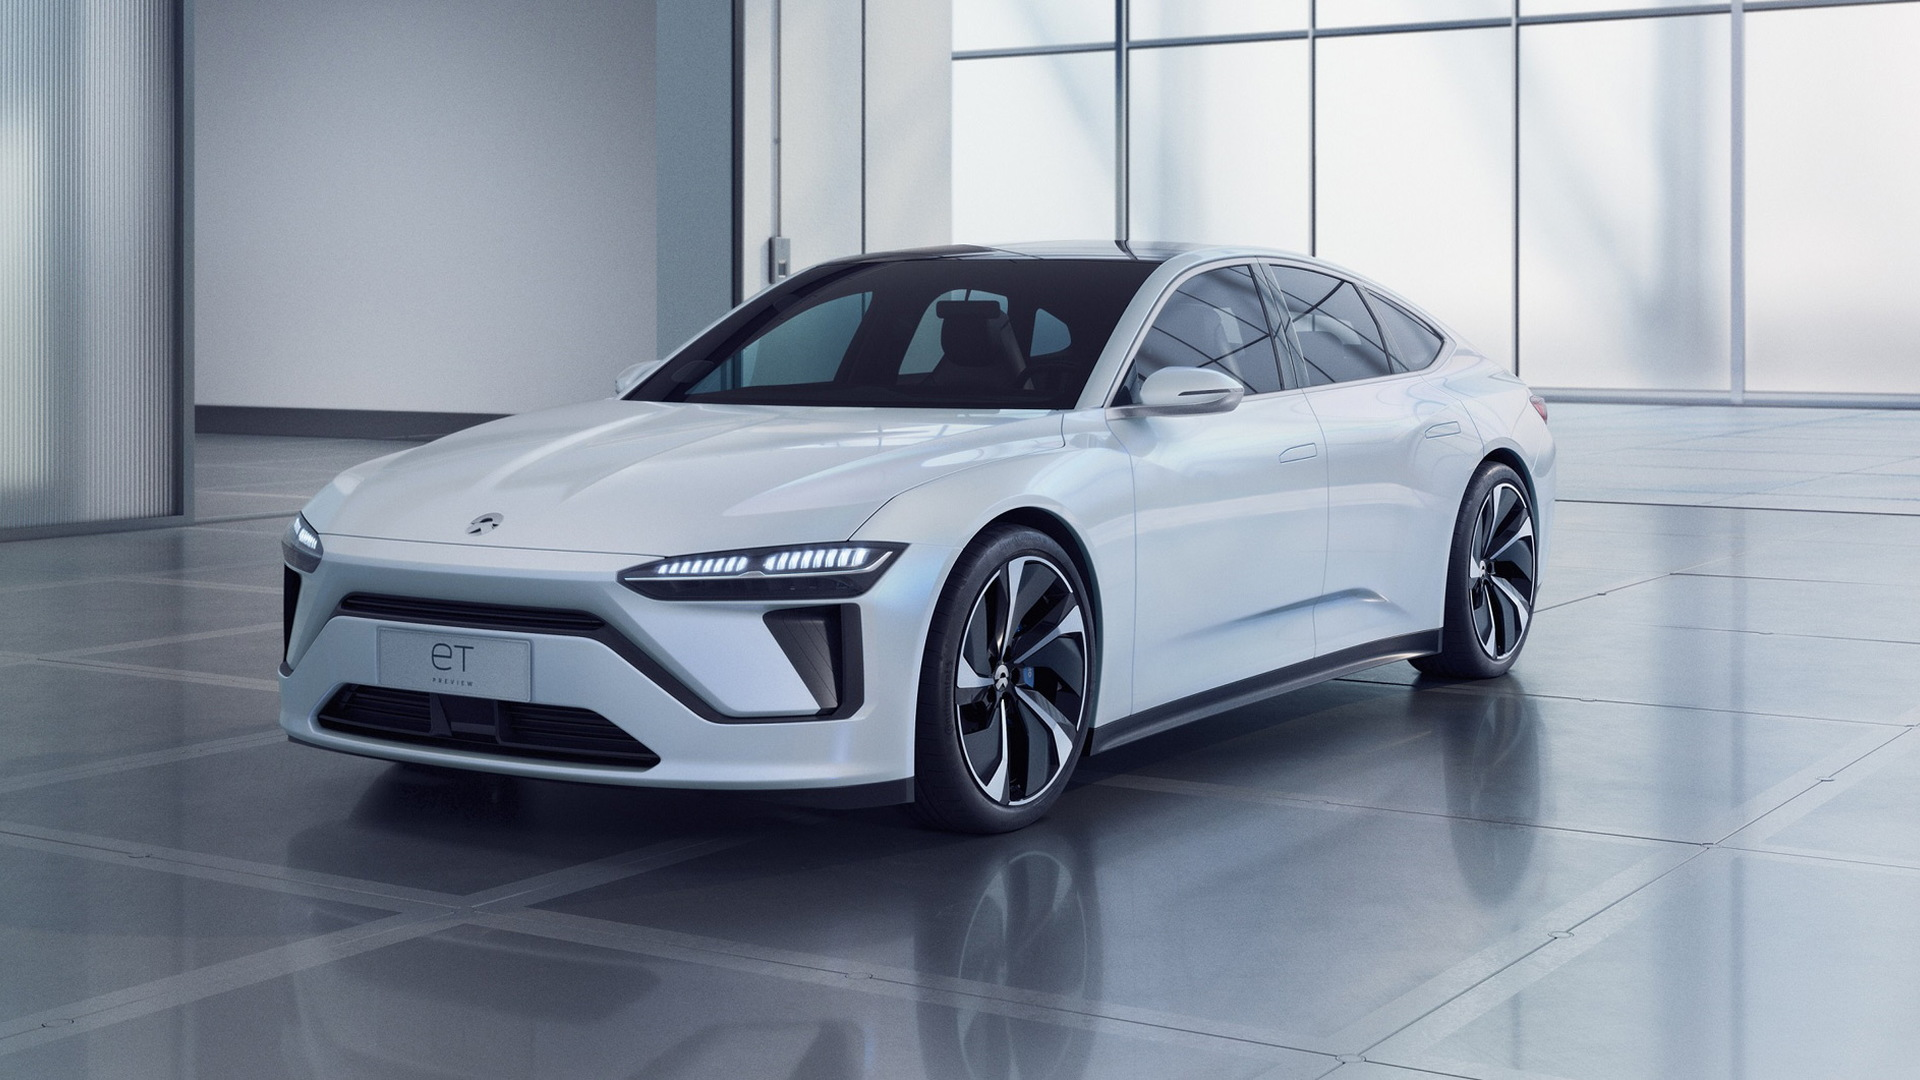 Nio previews its first sedan with ET Preview concept